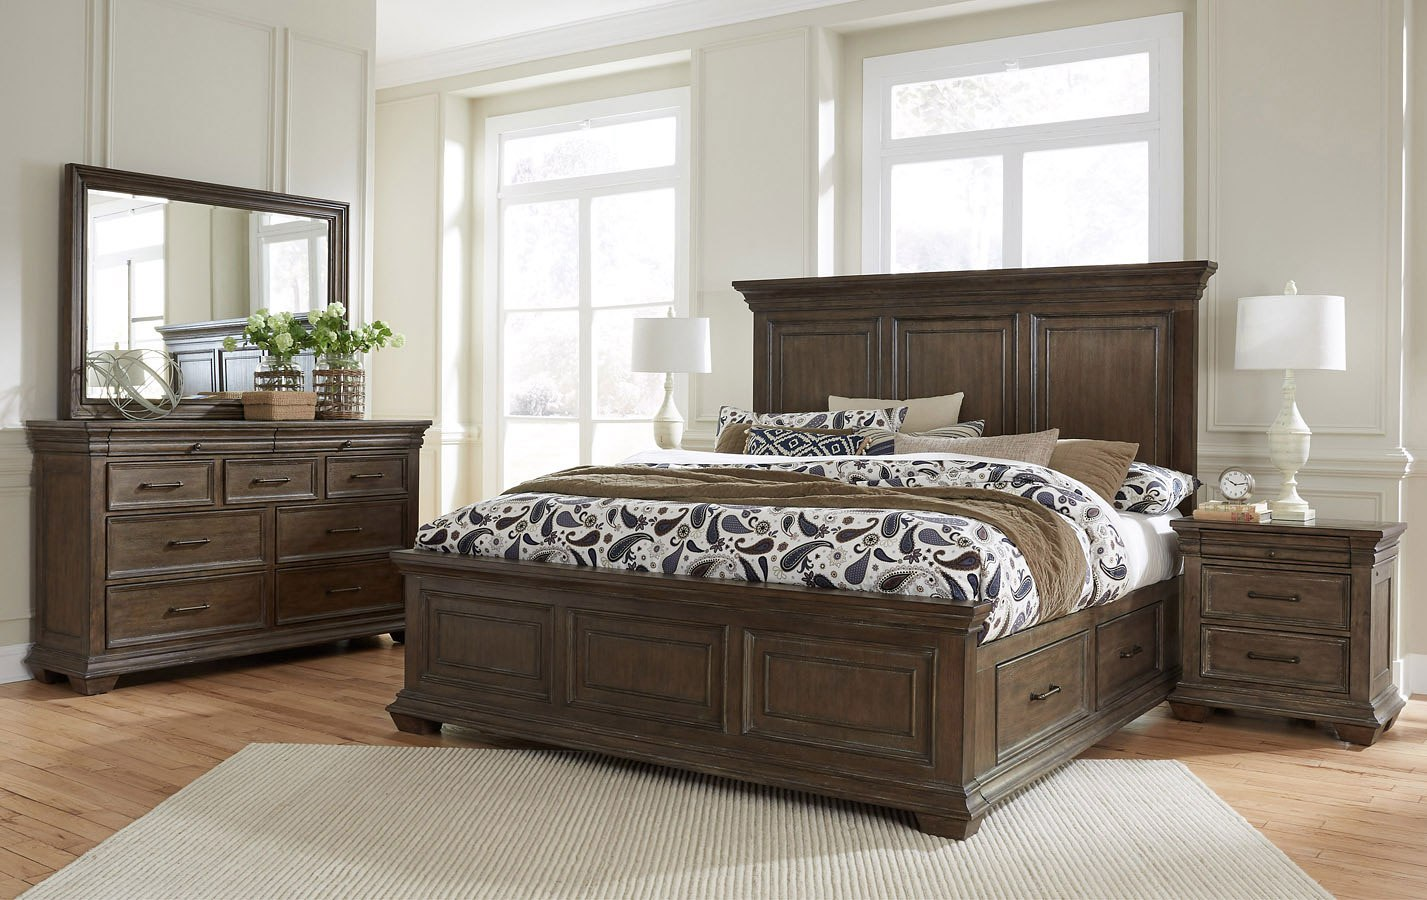 Camden Storage Bedroom Set Samuel Lawrence Furniture ...